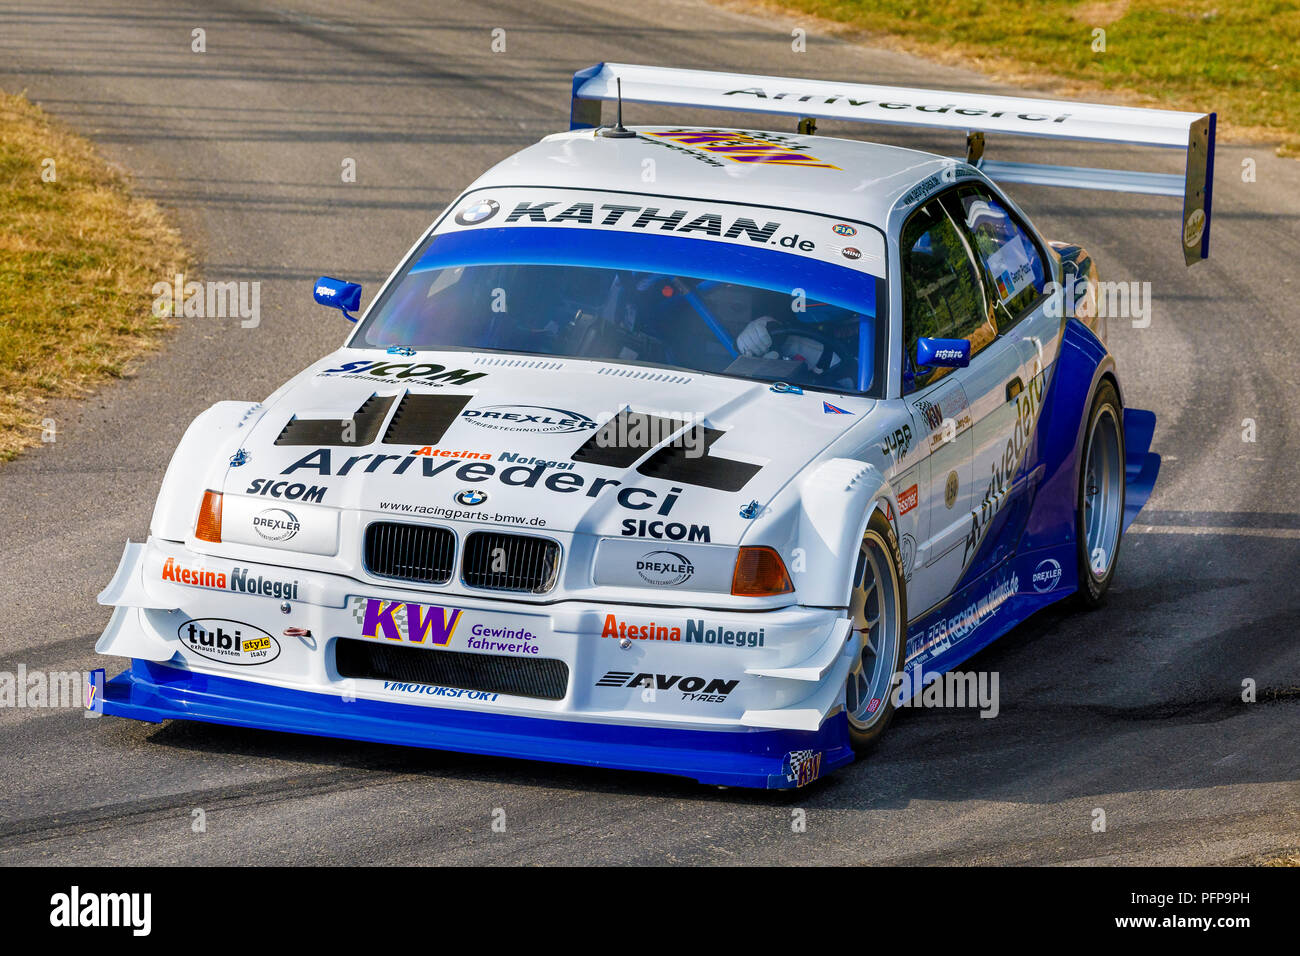 1991 BMW E36 V8 JUDD Pikes Peak Entrant With Driver Joerg Weidinger At The 2018 Goodwood Festival Of Speed Sussex UK